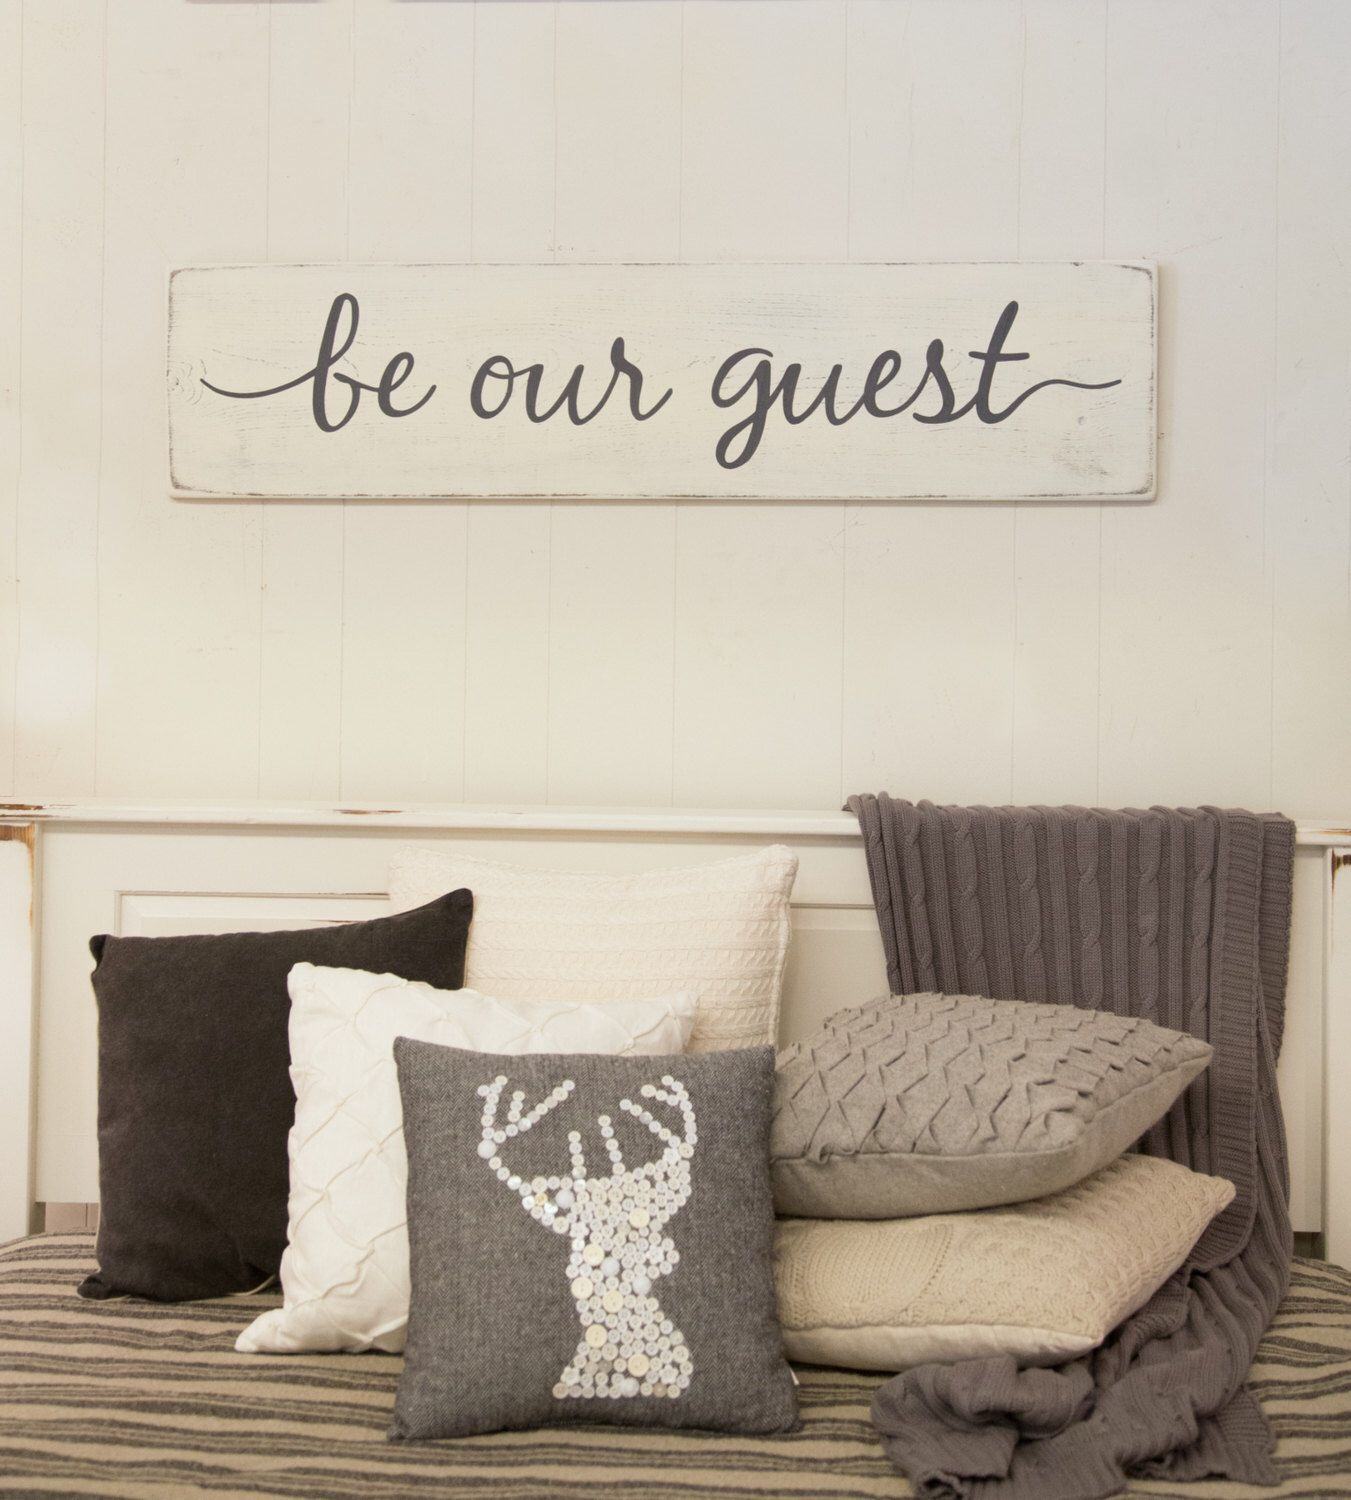 Guest Room Sign Decor Stunning Be Our Guest Sign  Guest Room Sign  Bedroom  Rustic Wood Sign Decorating Inspiration